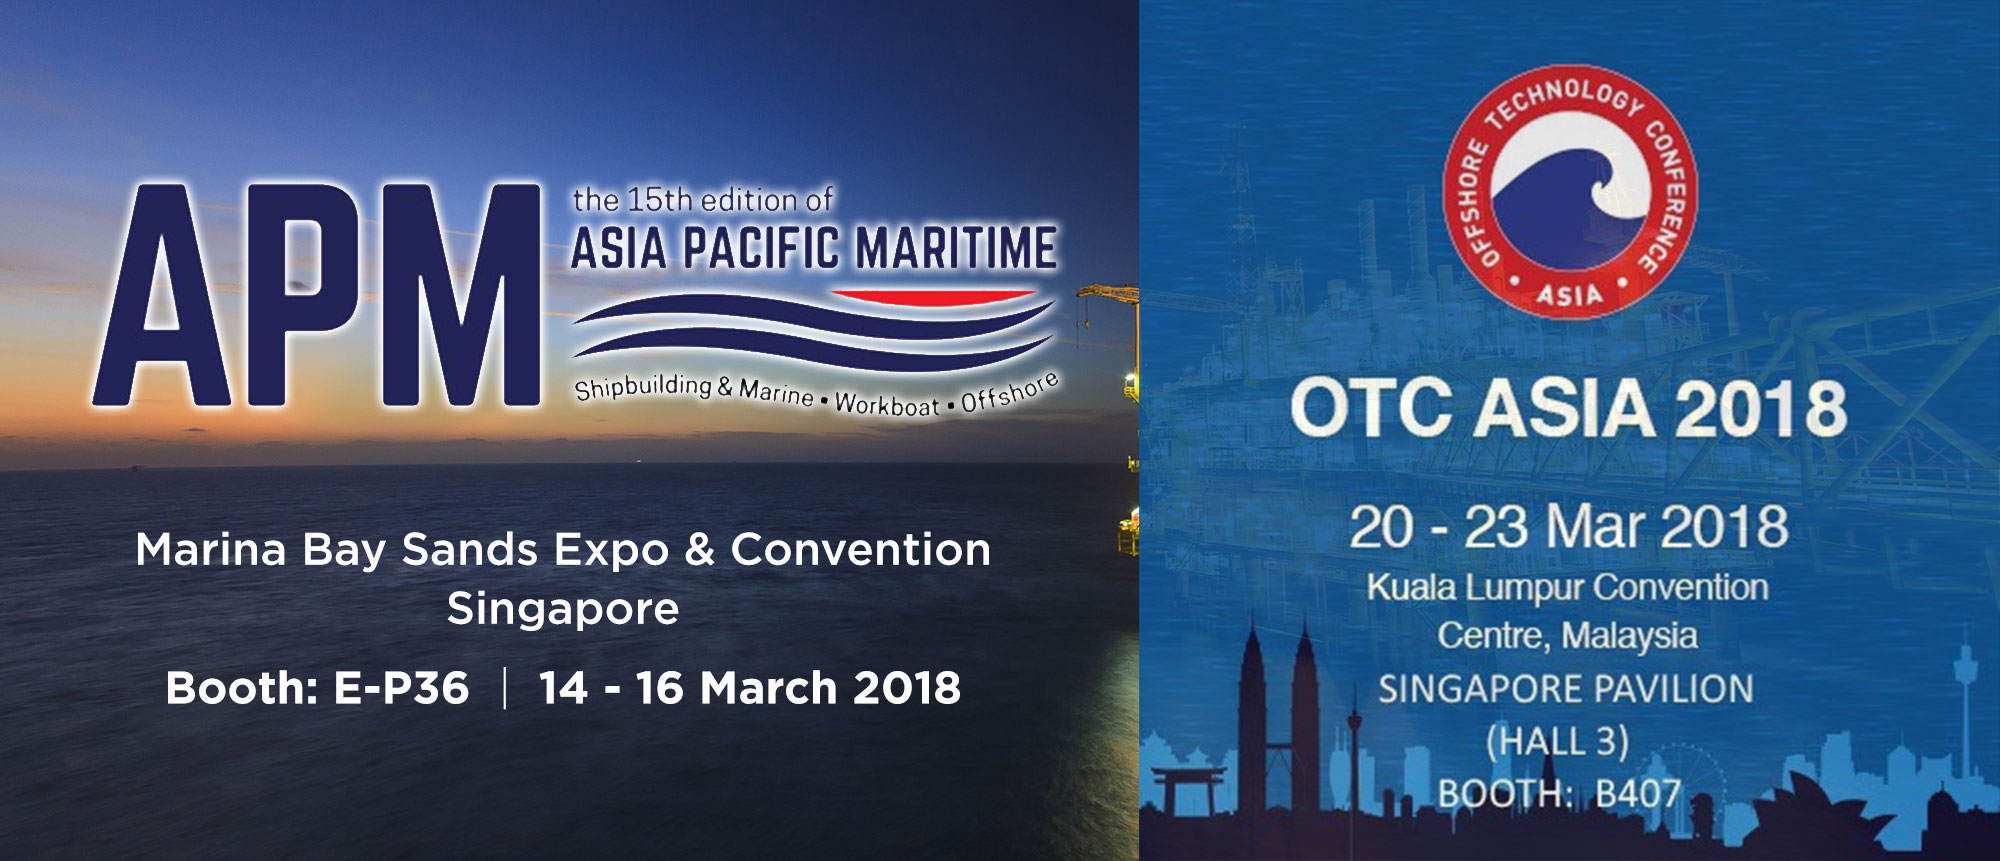 Asia Pacific Maritime Exhibition | Global Marine Safety